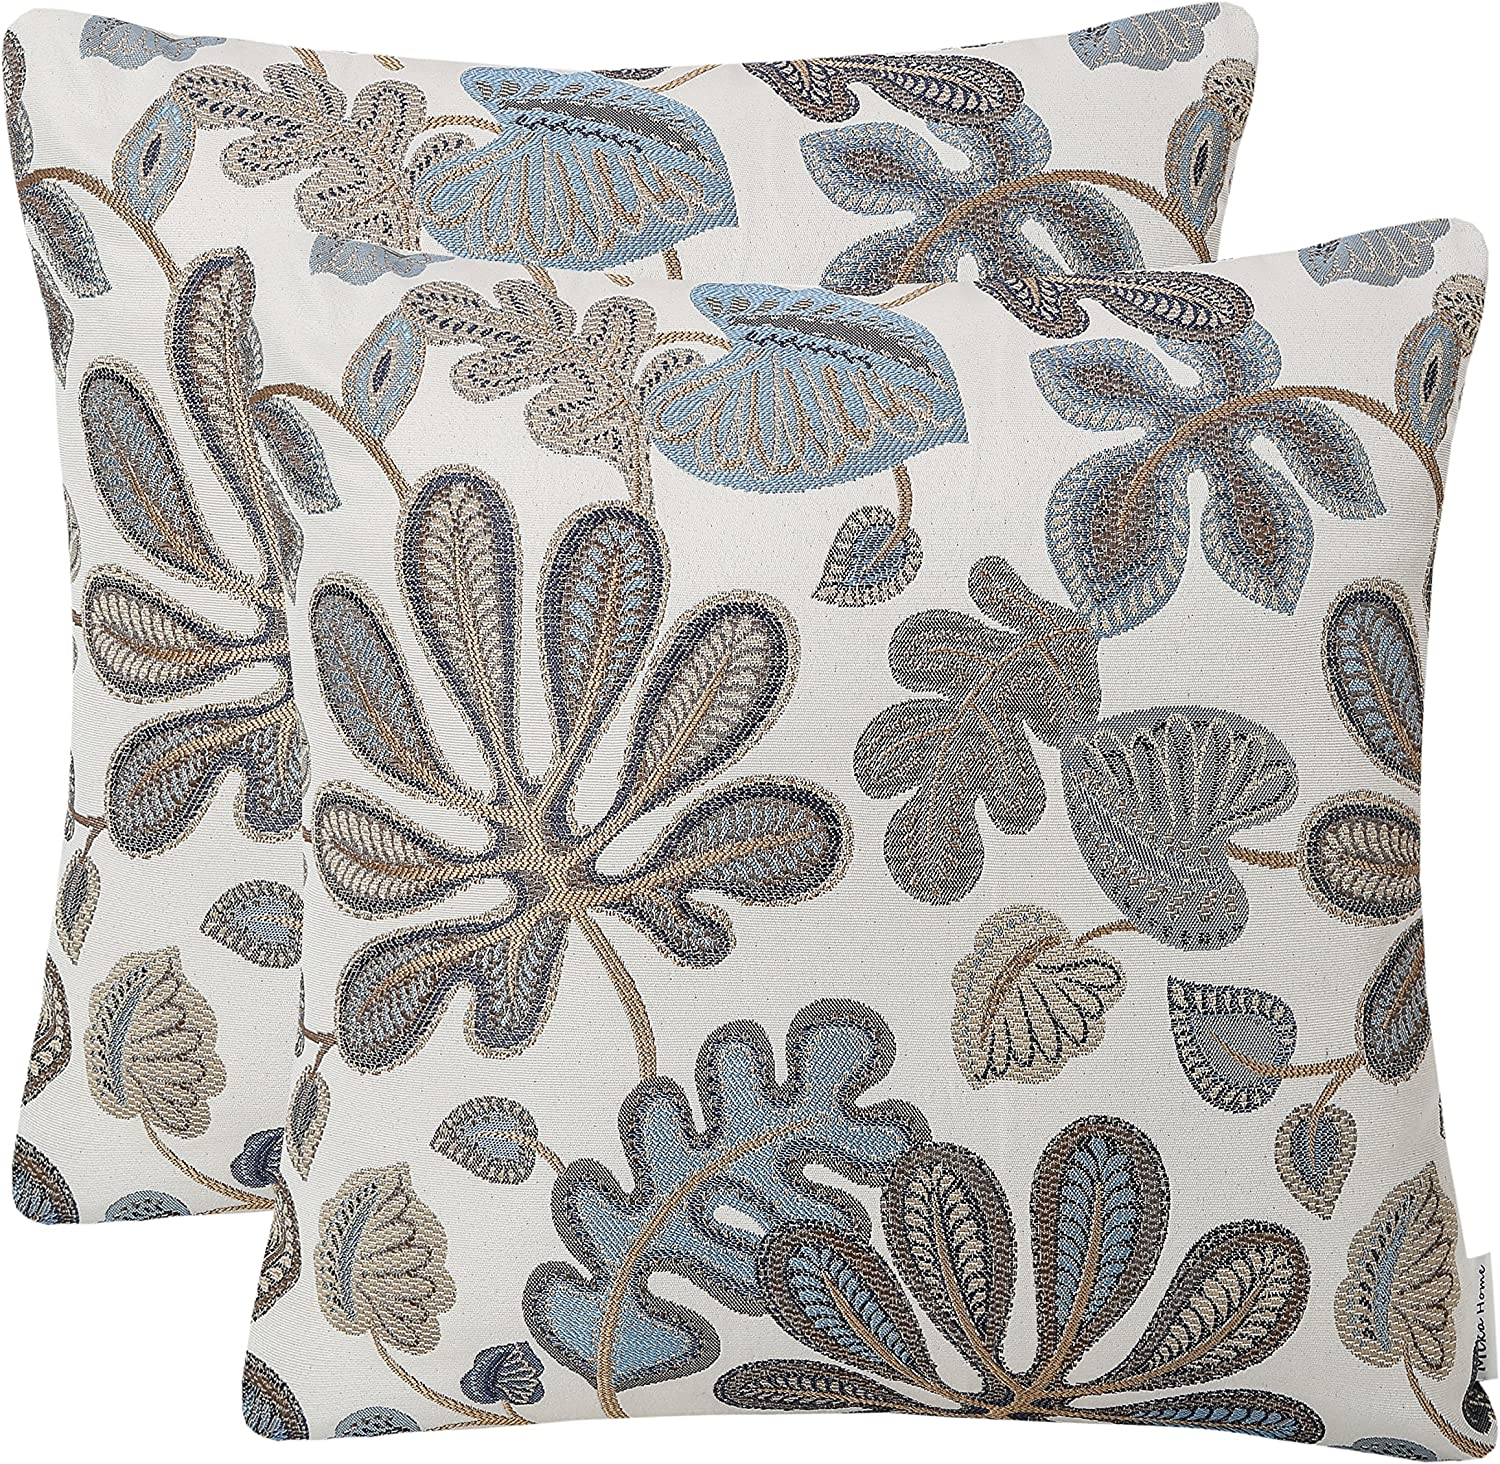 Mika Home Set Of 2 Jacquard Tropical Leaf Pattern Throw Pillow Covers Decorative Pillowcase 20x20 Inches Blue Cream Home Kitchen